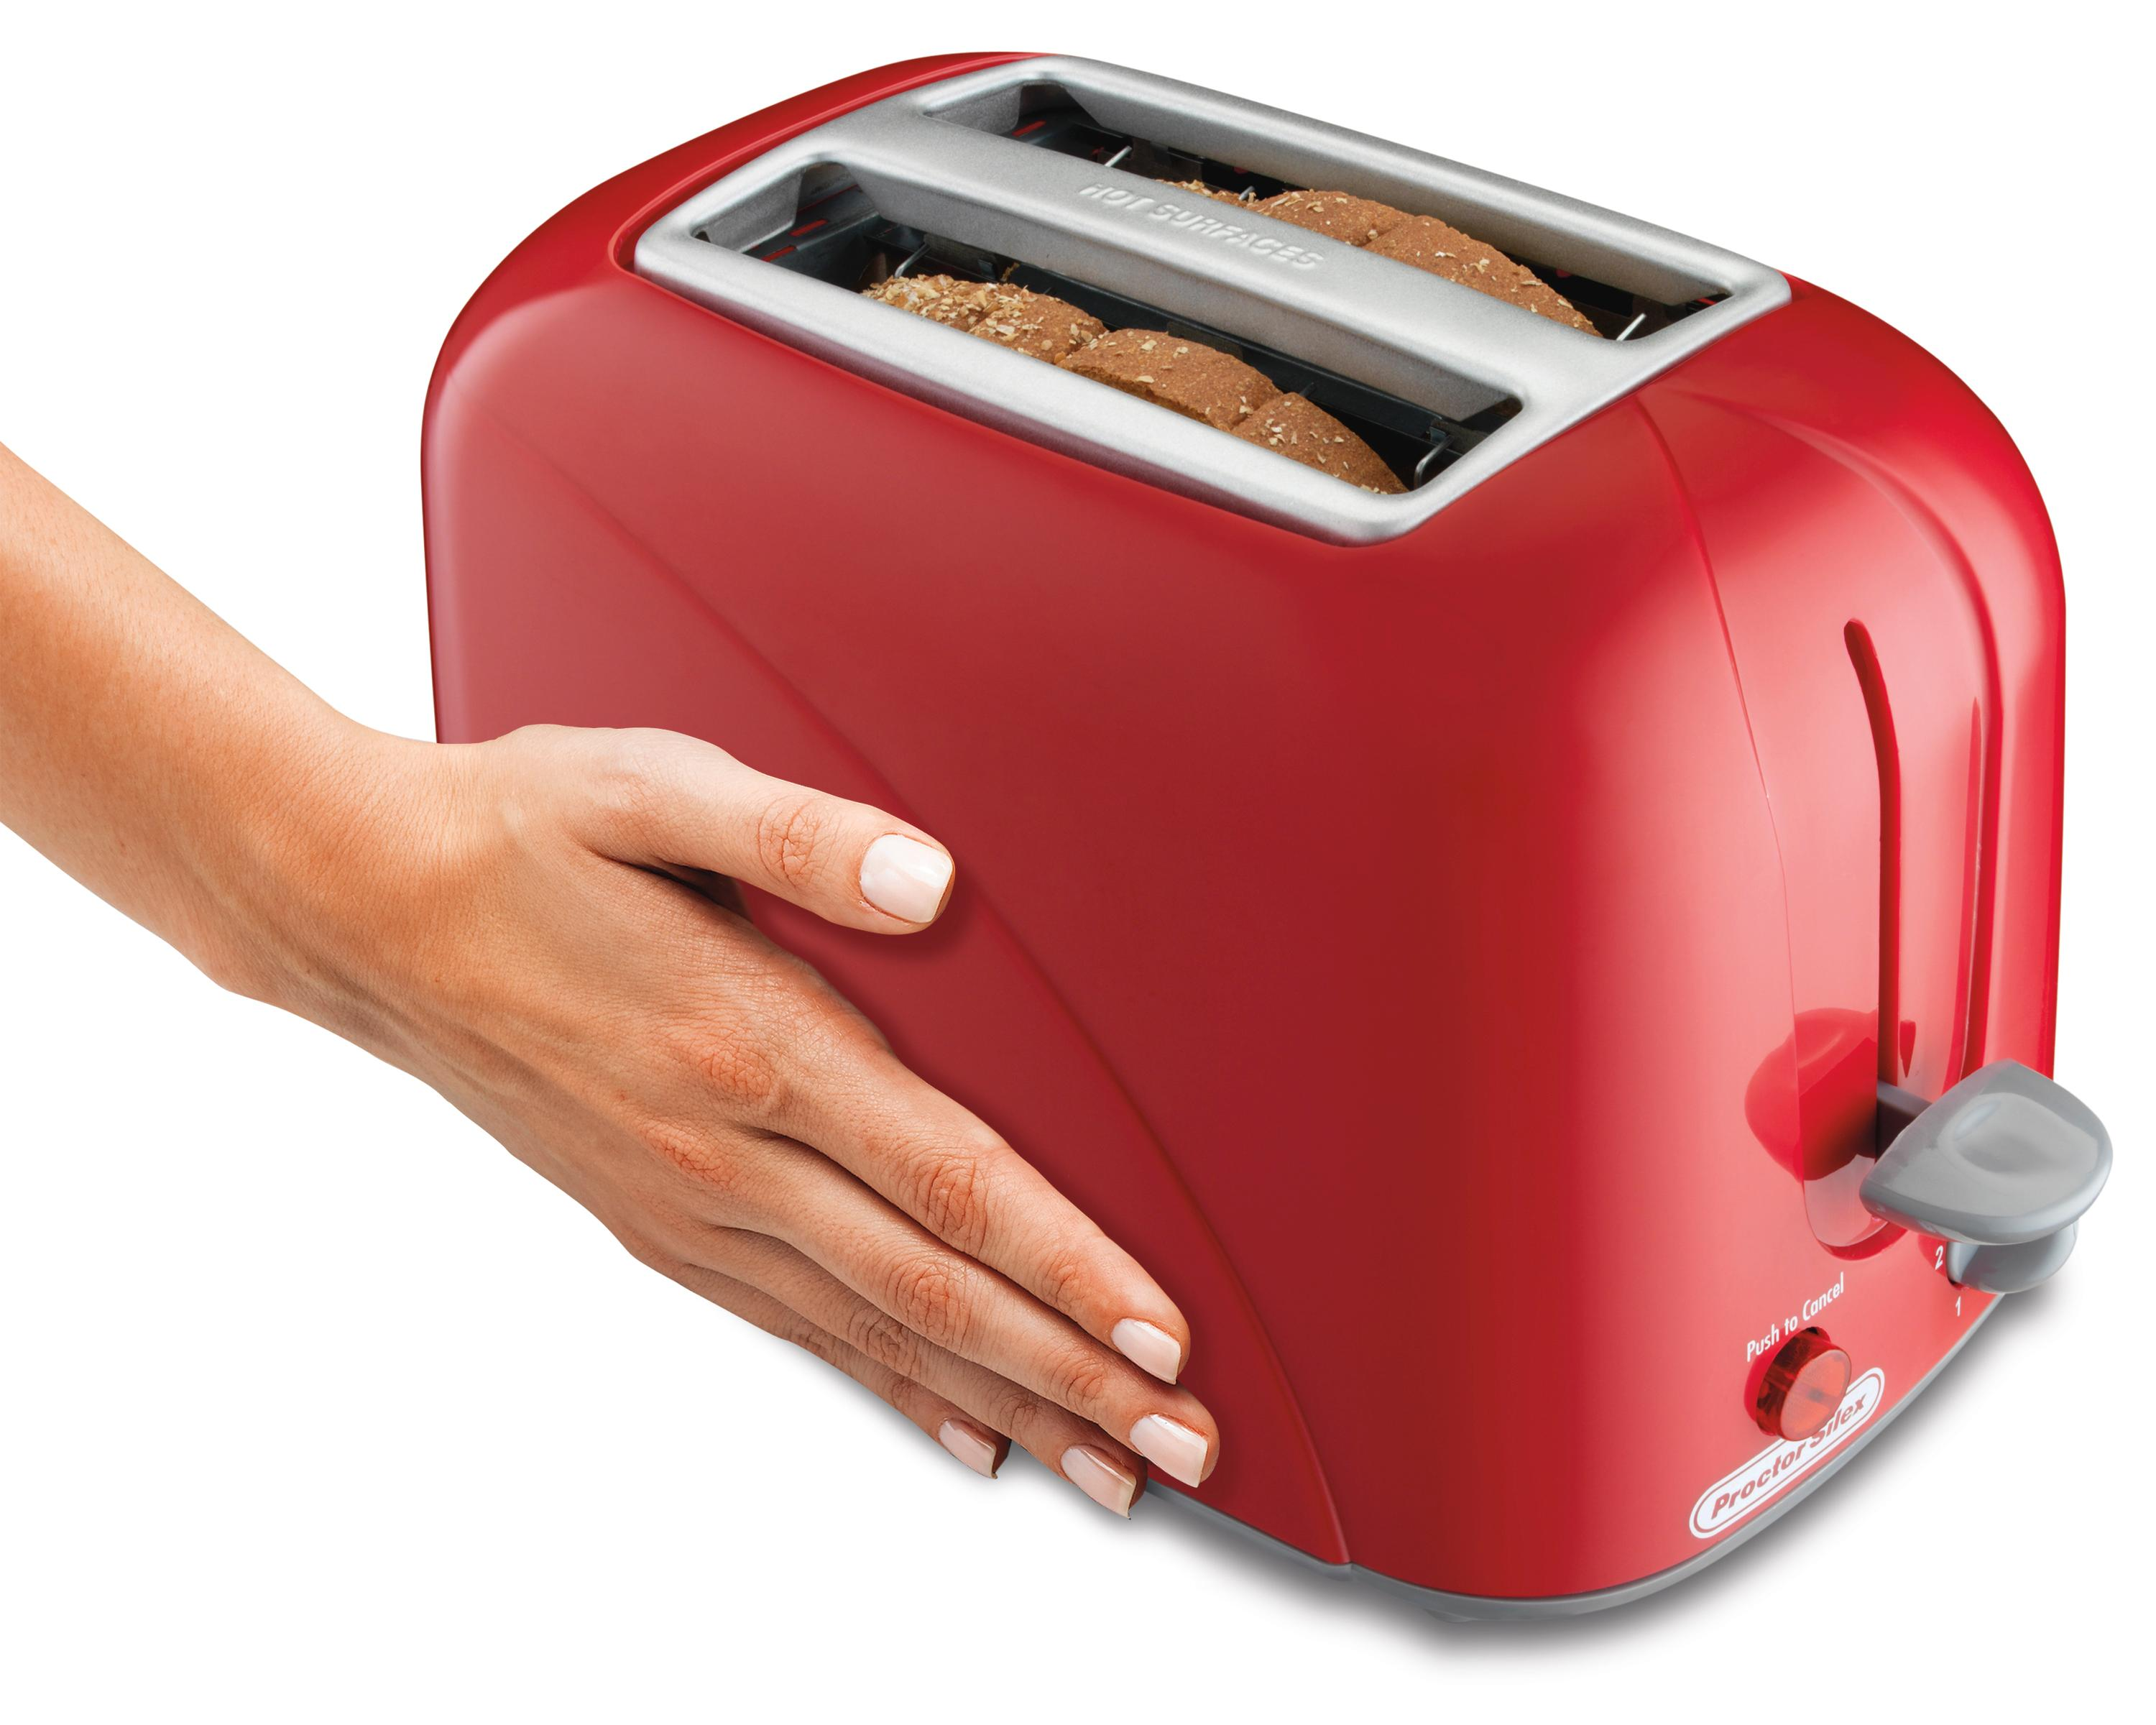 toaster lowest eaa specials prices online min makro toasters defy result search slice